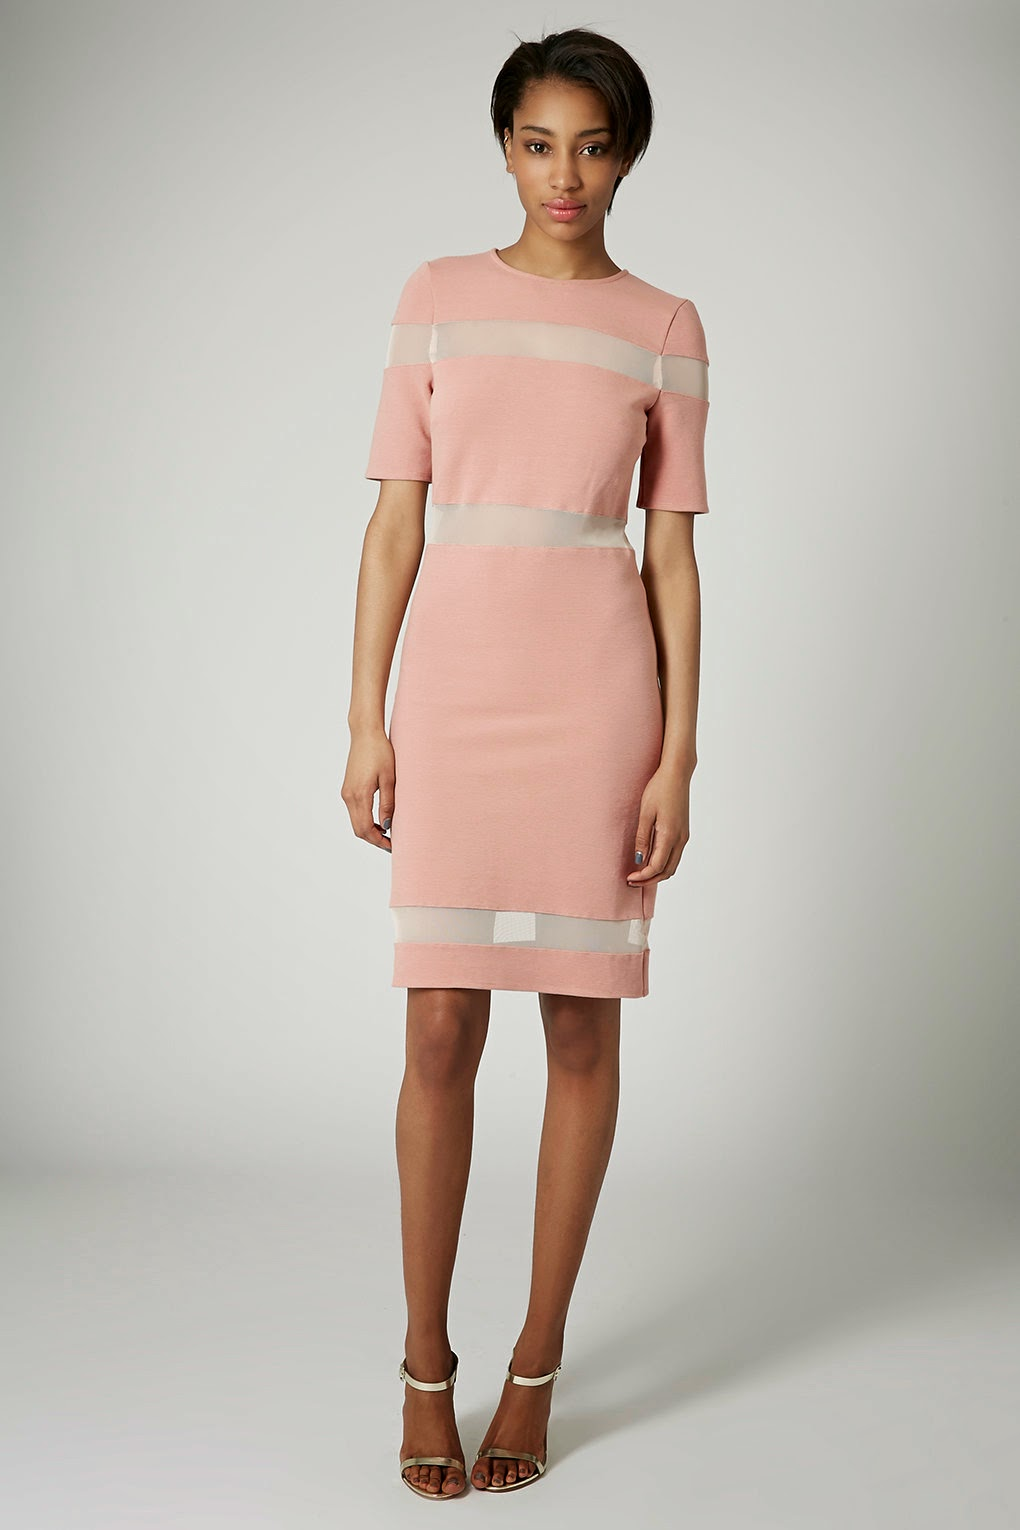 peach panel dress, sheer panel dress,